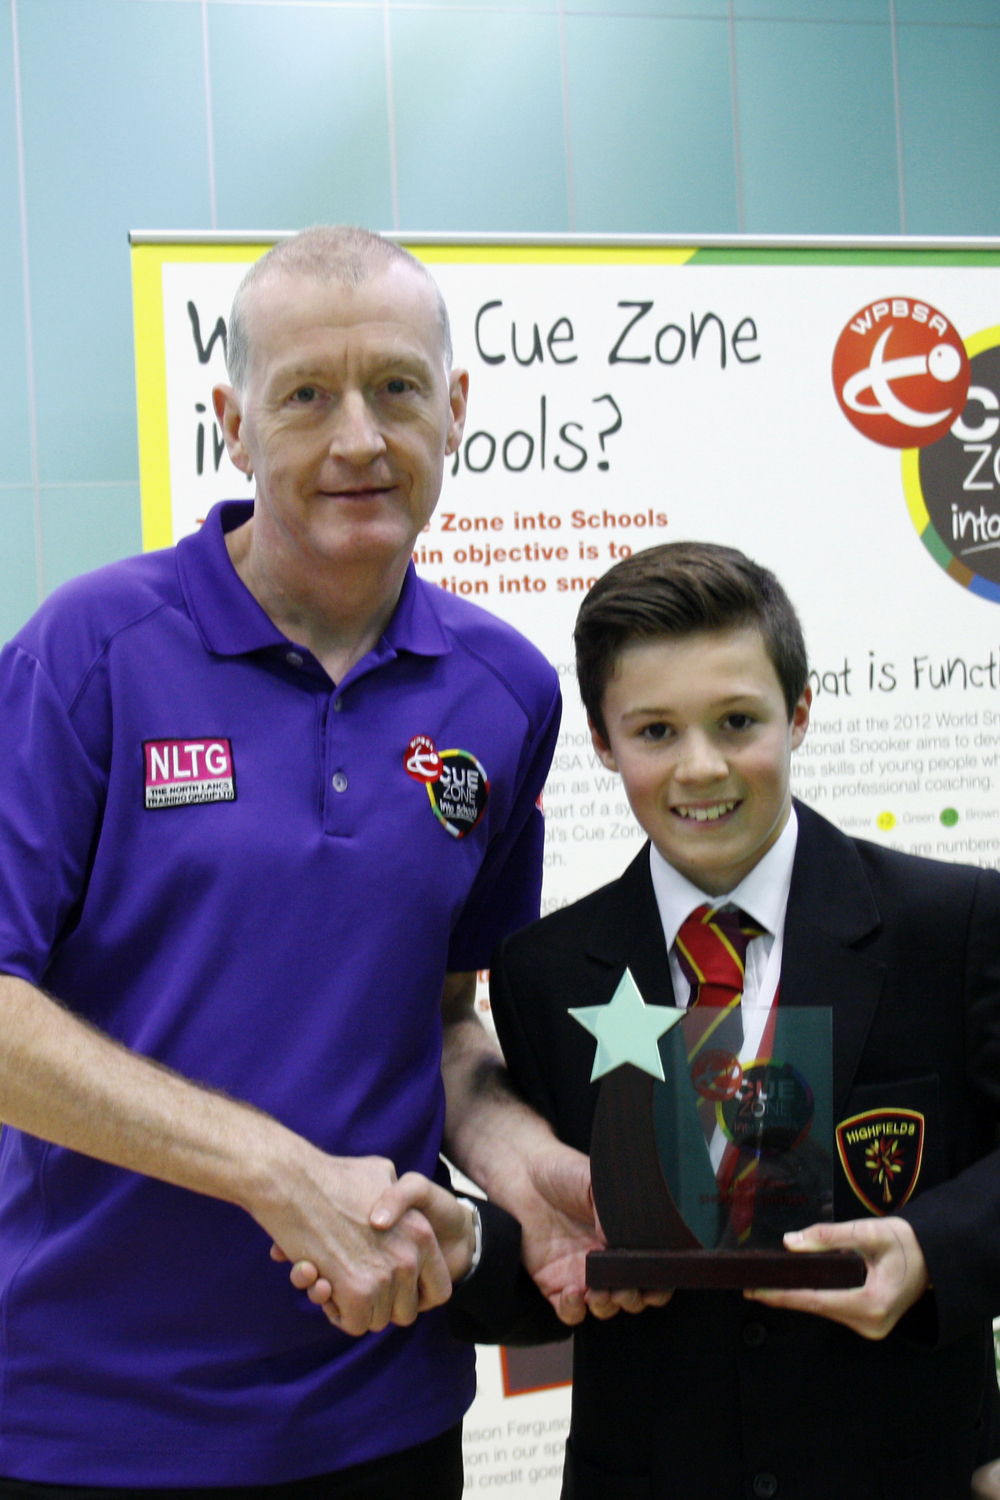 Challenge Winner, Jack Gibson, photographed receiving his award from Steve Davis. Jacks prize was a flat screen HD TV!